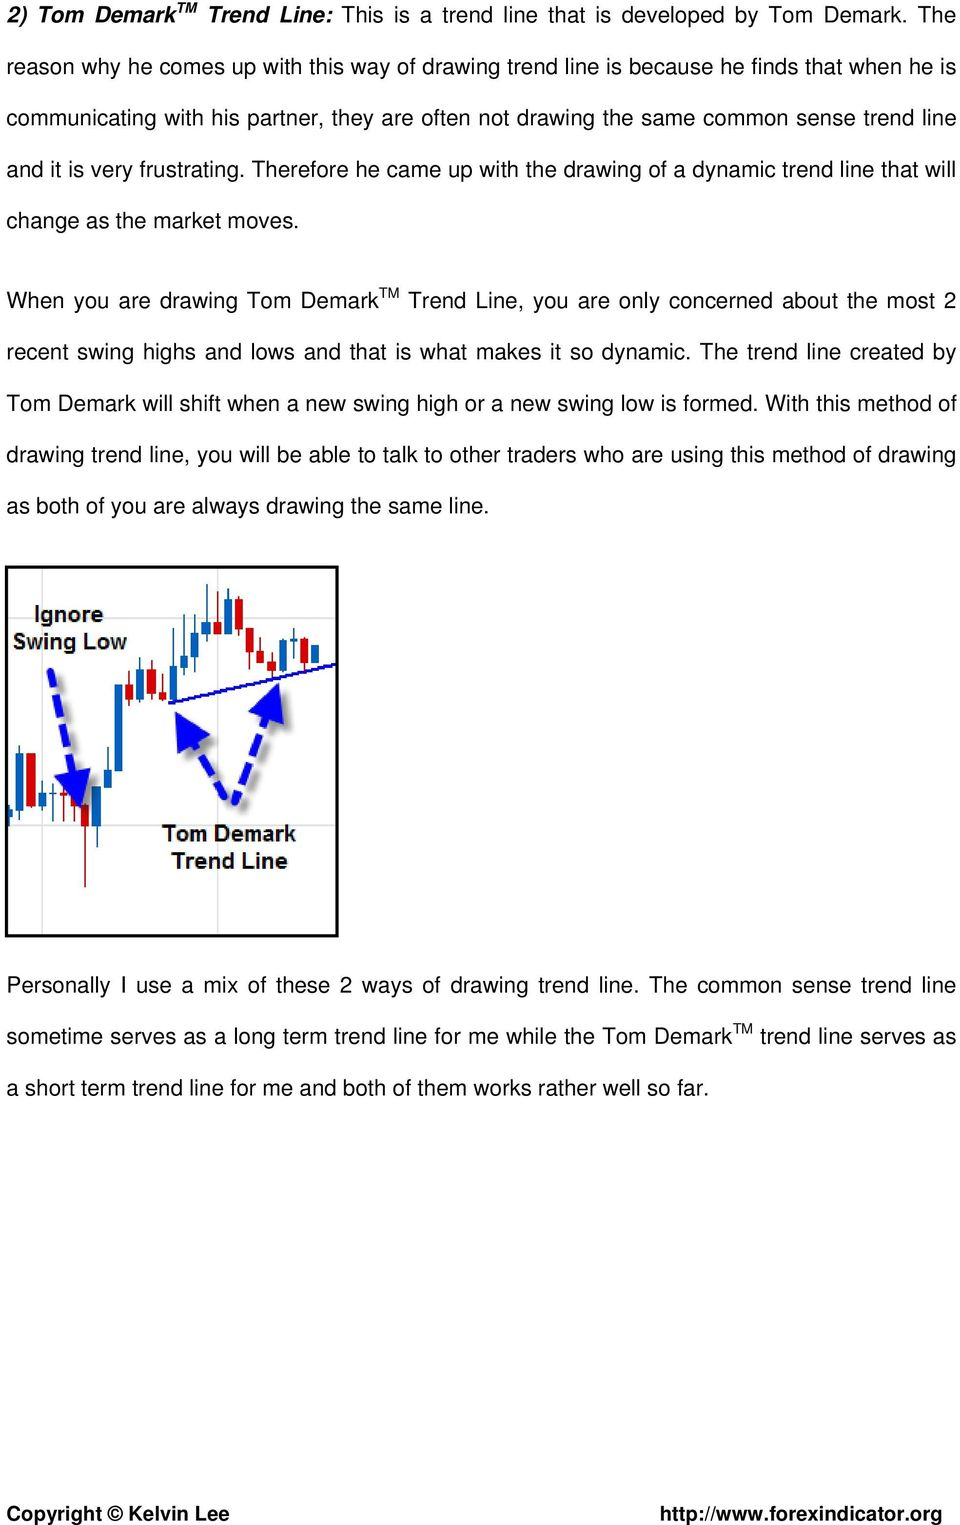 is very frustrating. Therefore he came up with the drawing of a dynamic trend line that will change as the market moves.